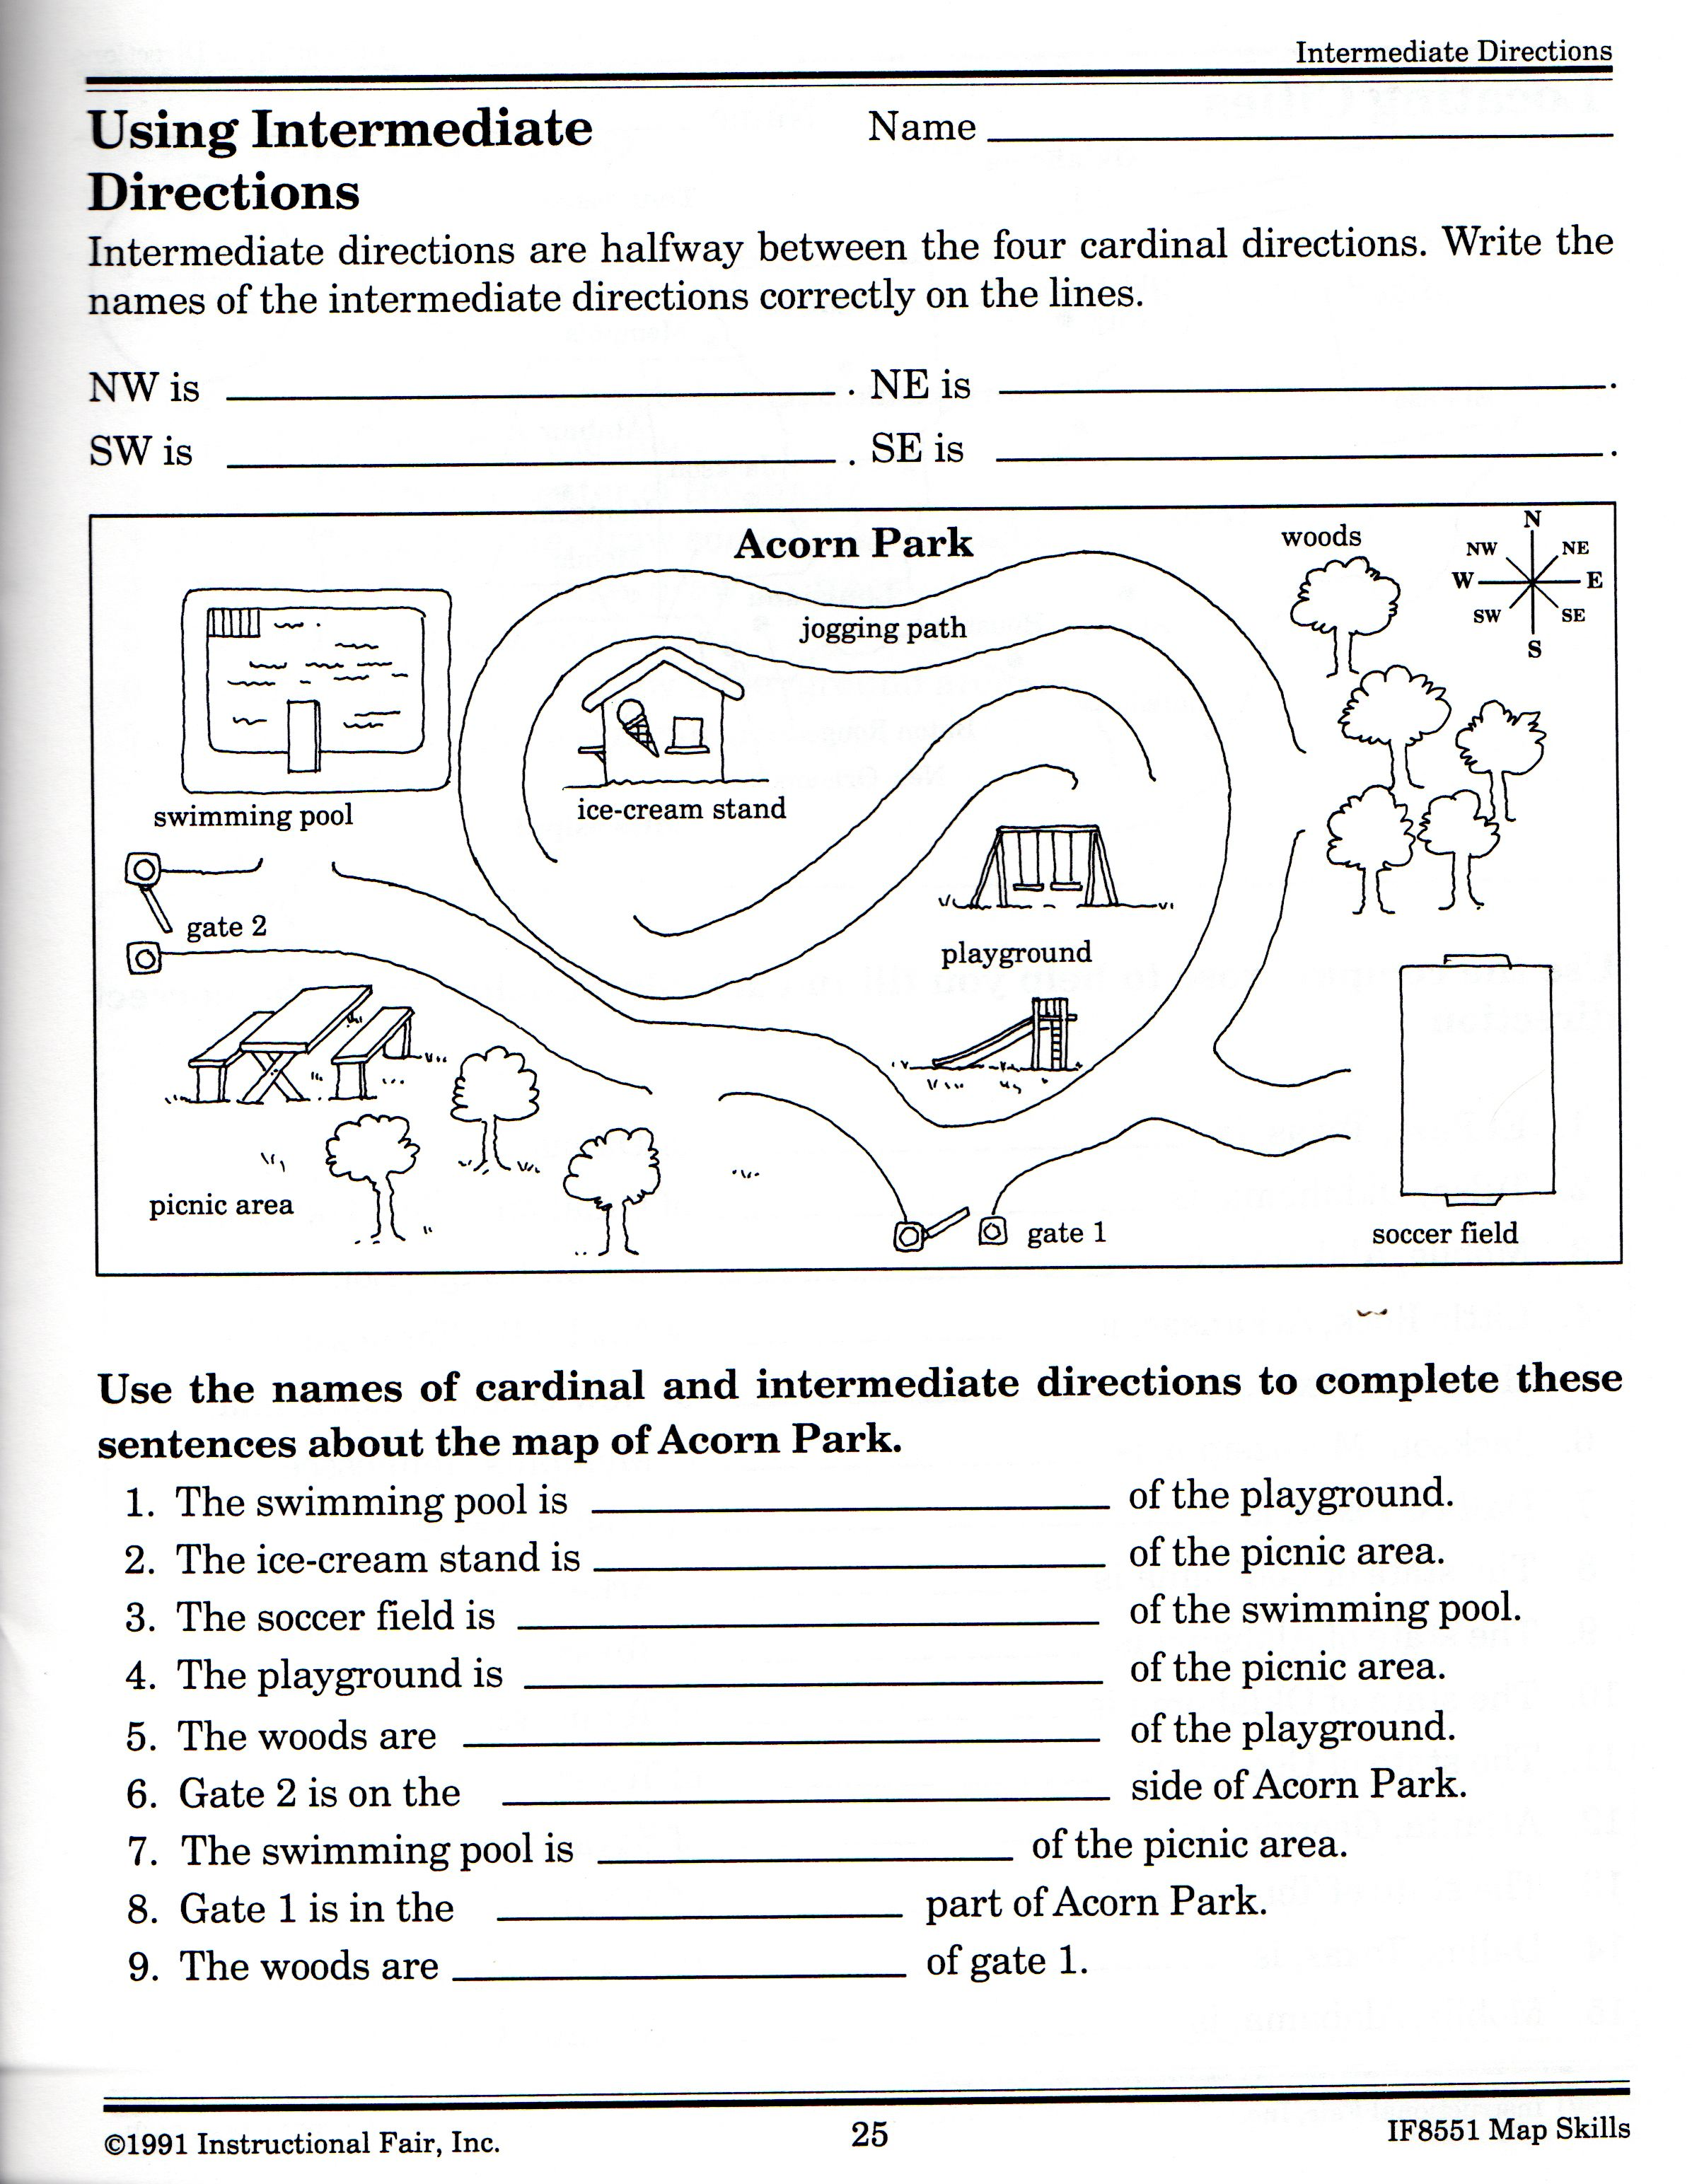 Intermediate Directions Worksheet Graphic Design Logos